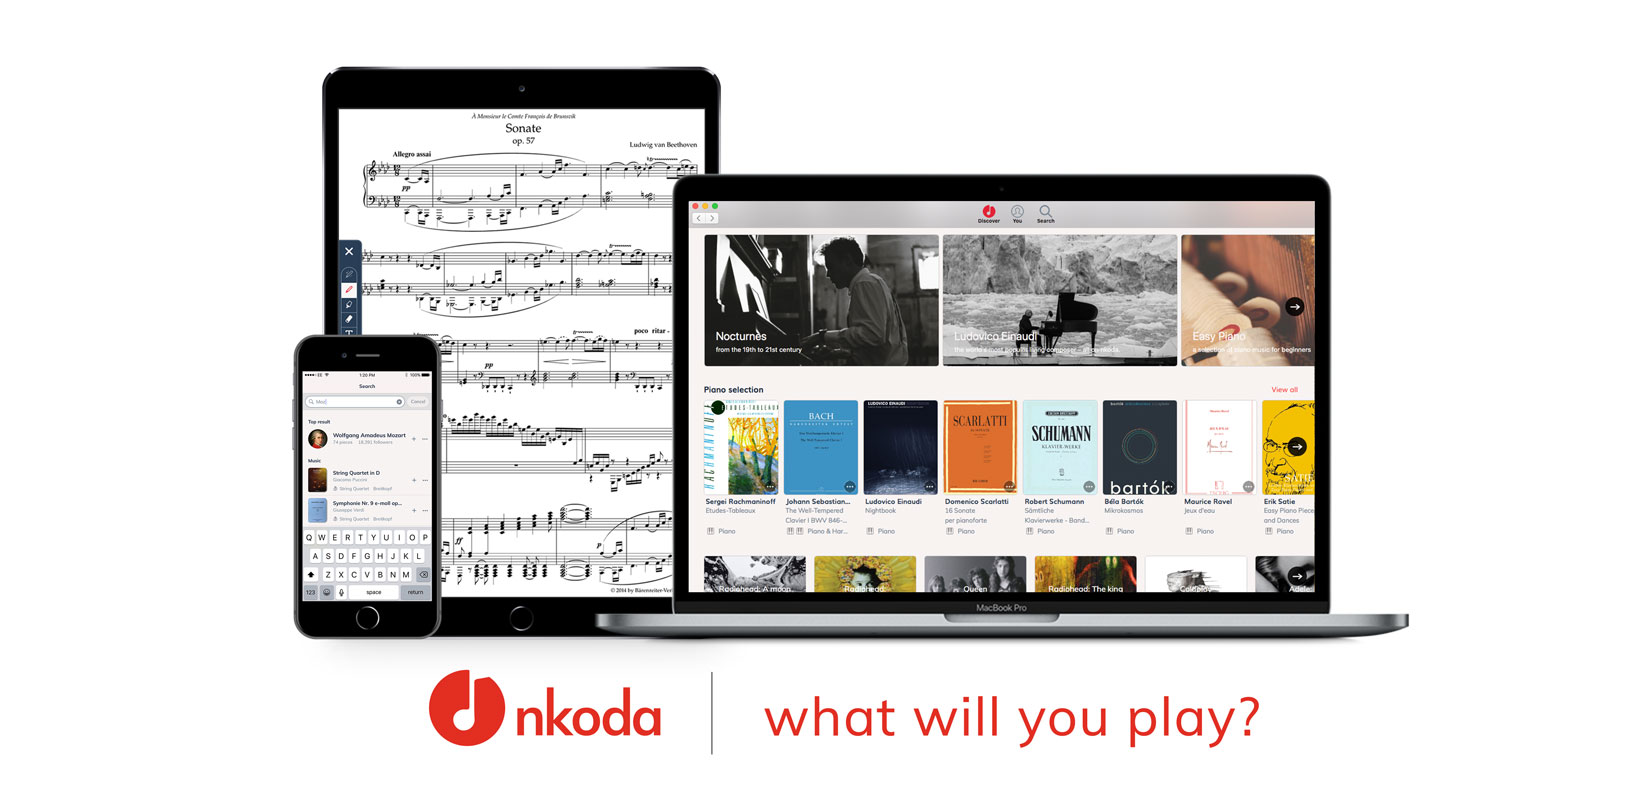 Transforming 500 years of music: the arrival of nkoda